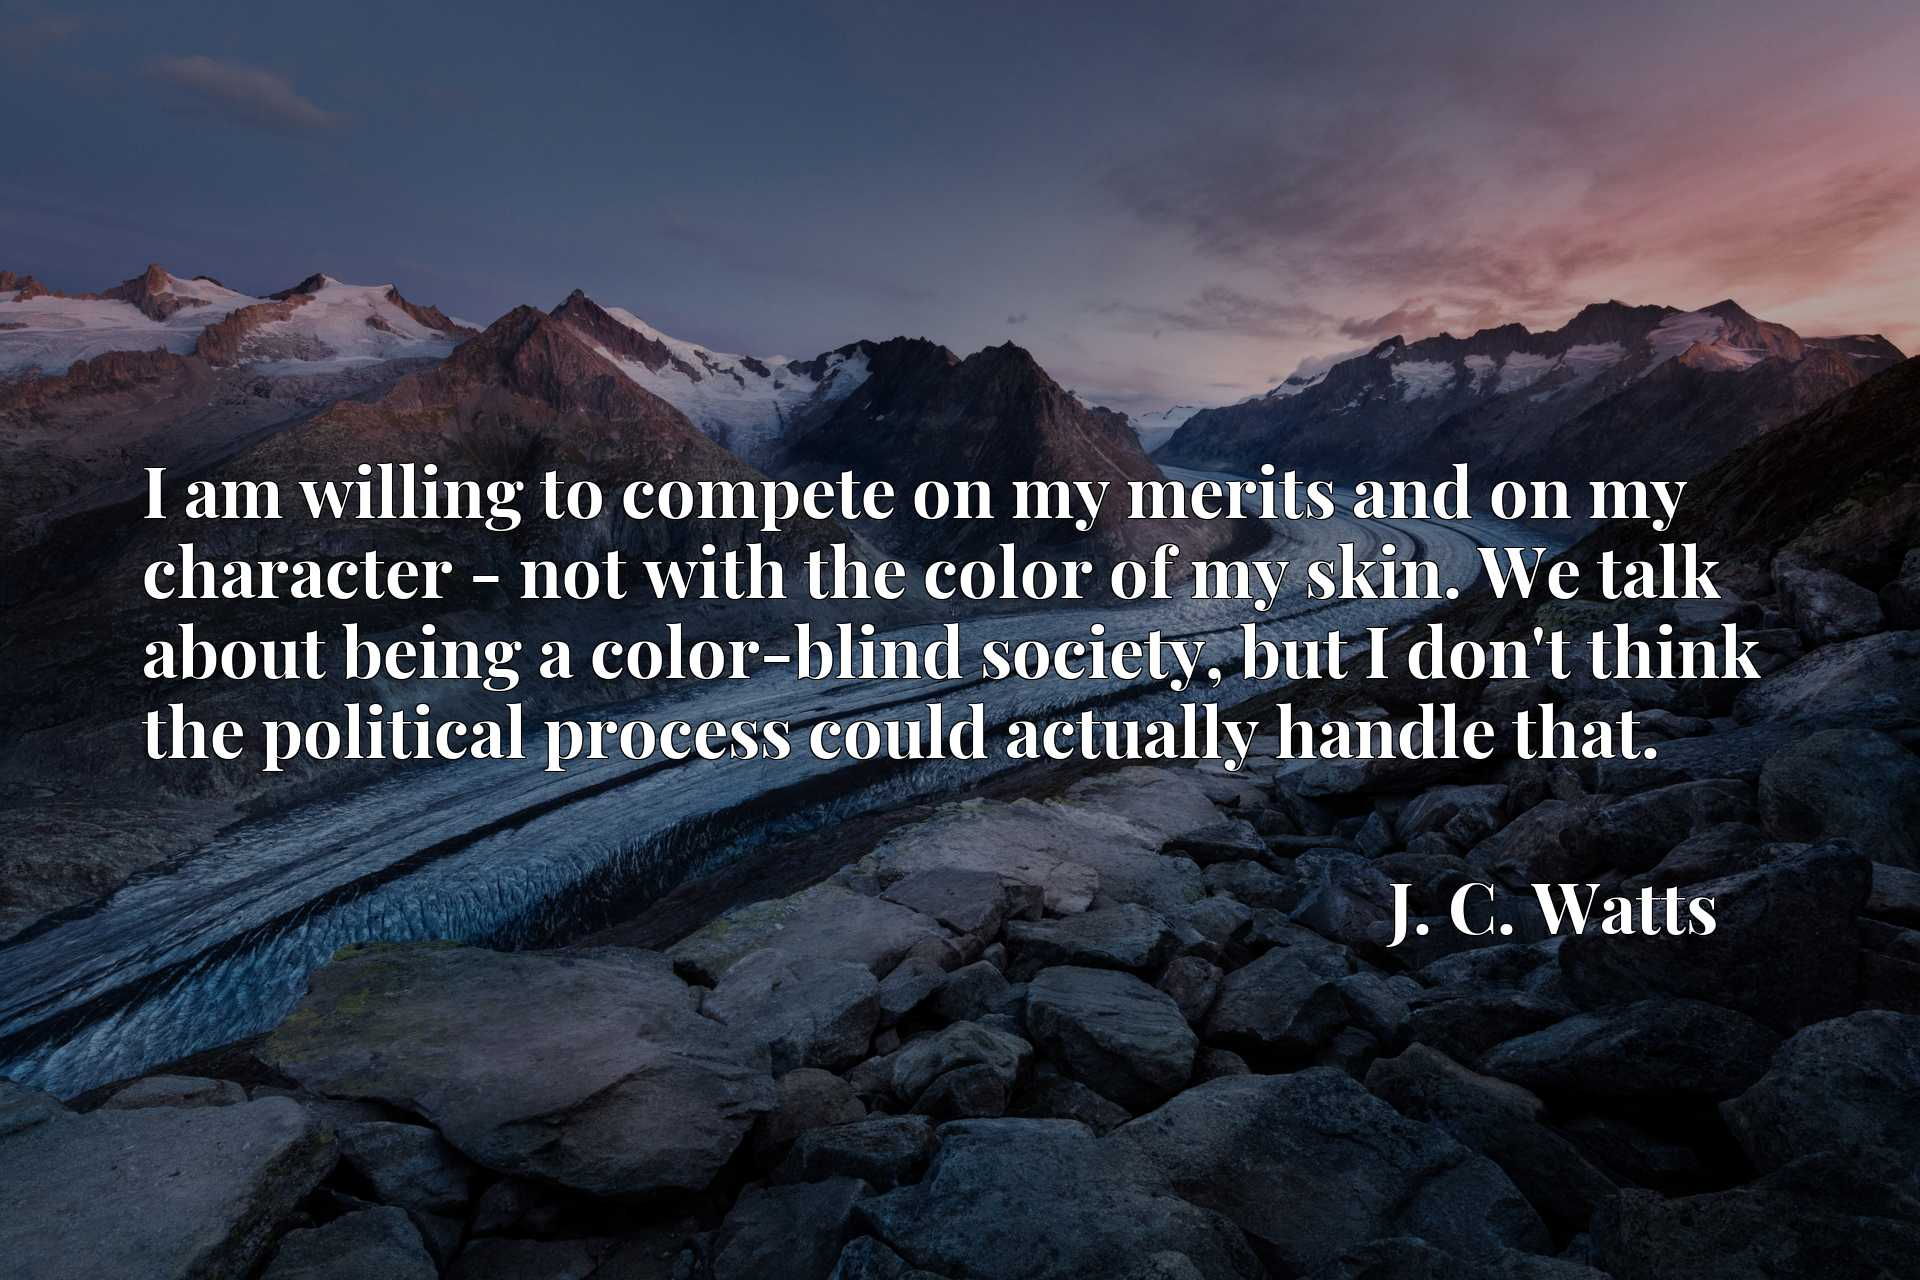 I am willing to compete on my merits and on my character - not with the color of my skin. We talk about being a color-blind society, but I don't think the political process could actually handle that.